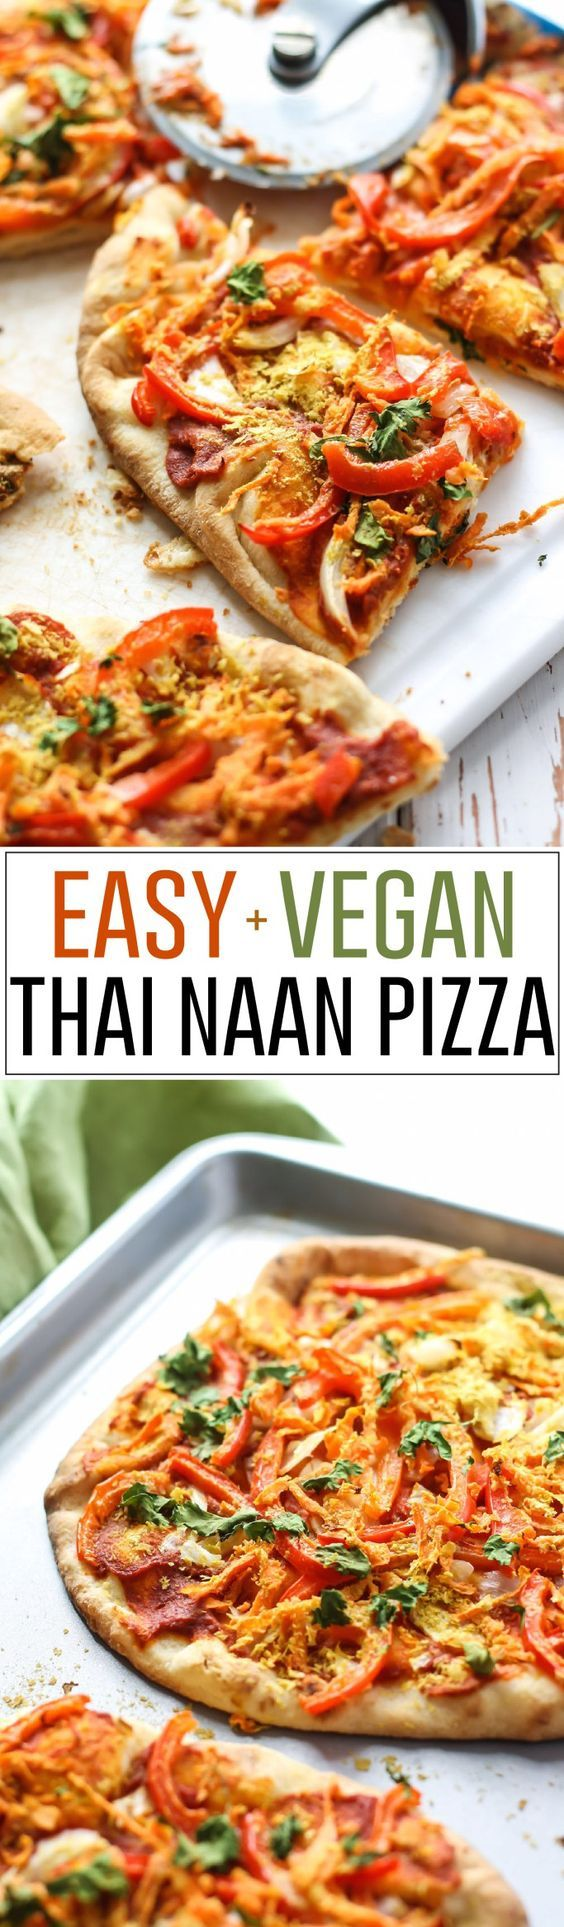 A mix of red curry and tomato paste creates the sauce for this Easy Vegan Thai Naan Pizza. | healthy recipe ideas @xhealthyrecipex |